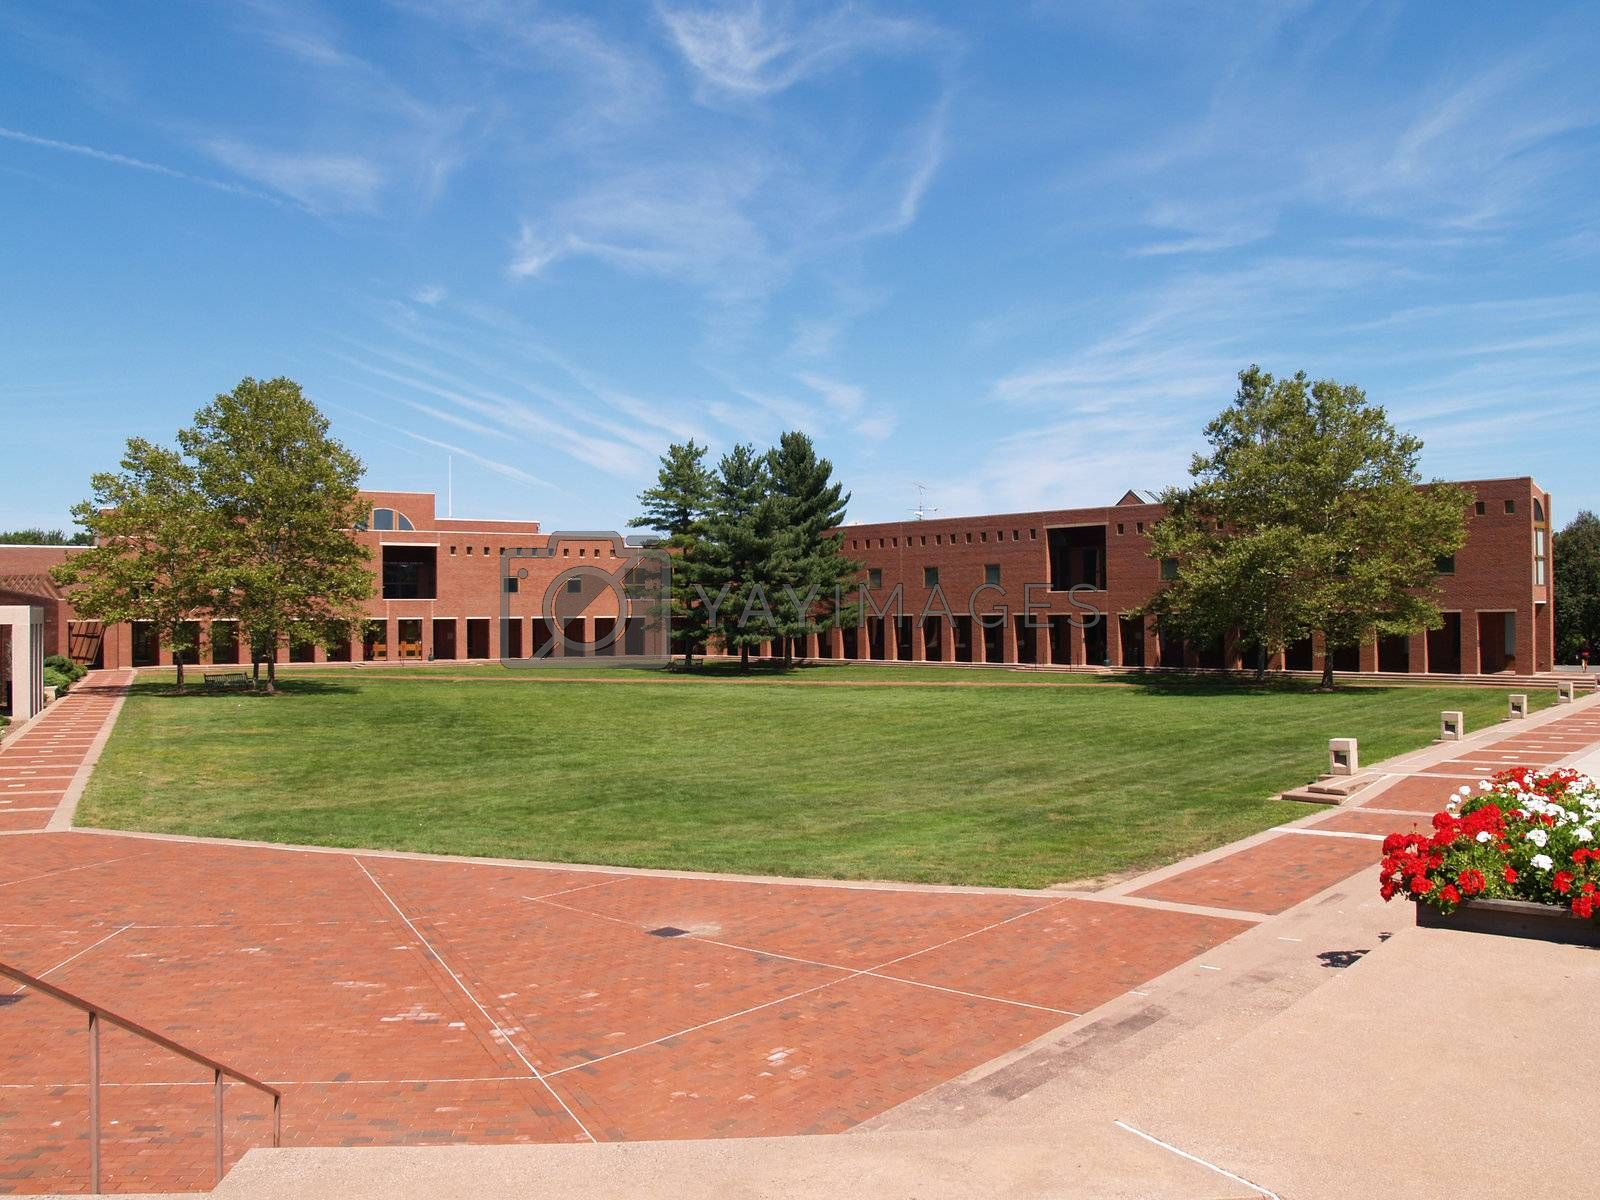 Gray Center on the campus of the University of Hartford in West Hartford, Connecticut